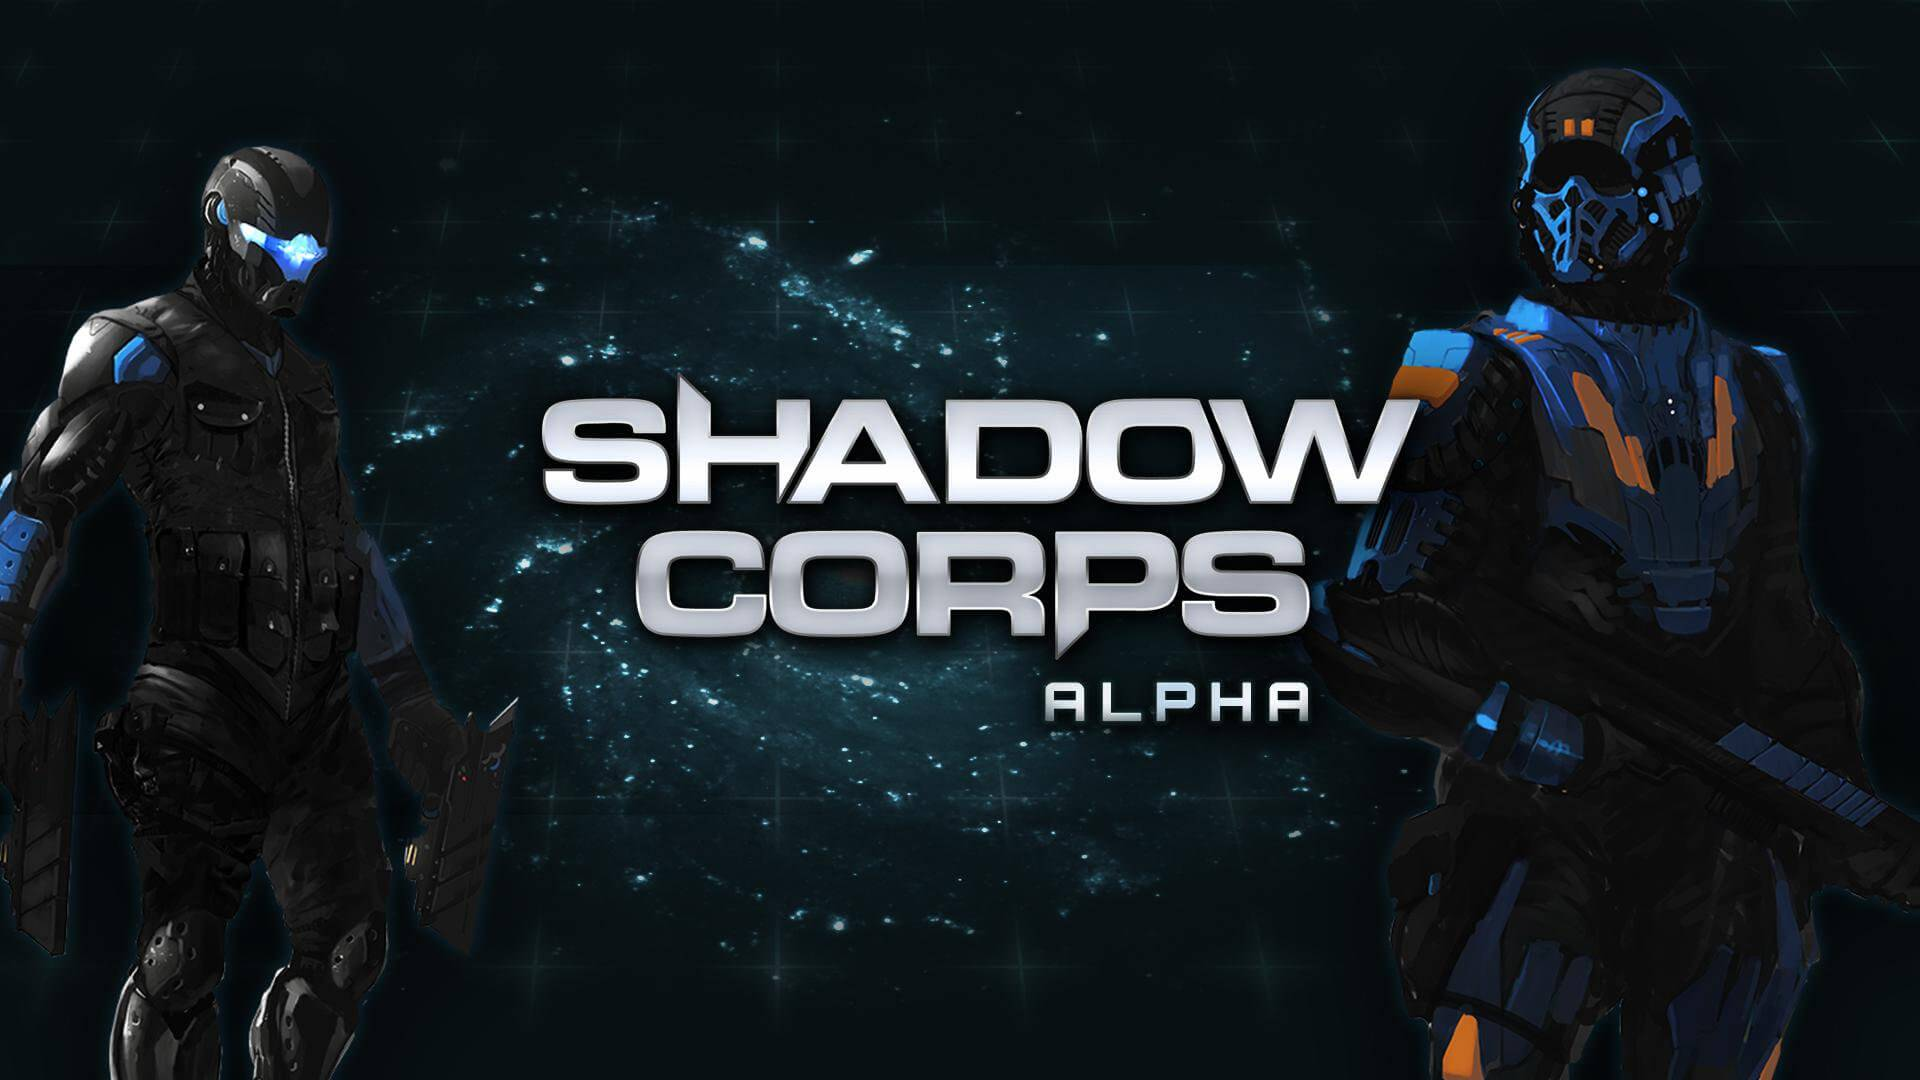 Shadow Corps - New turn-based strategy game